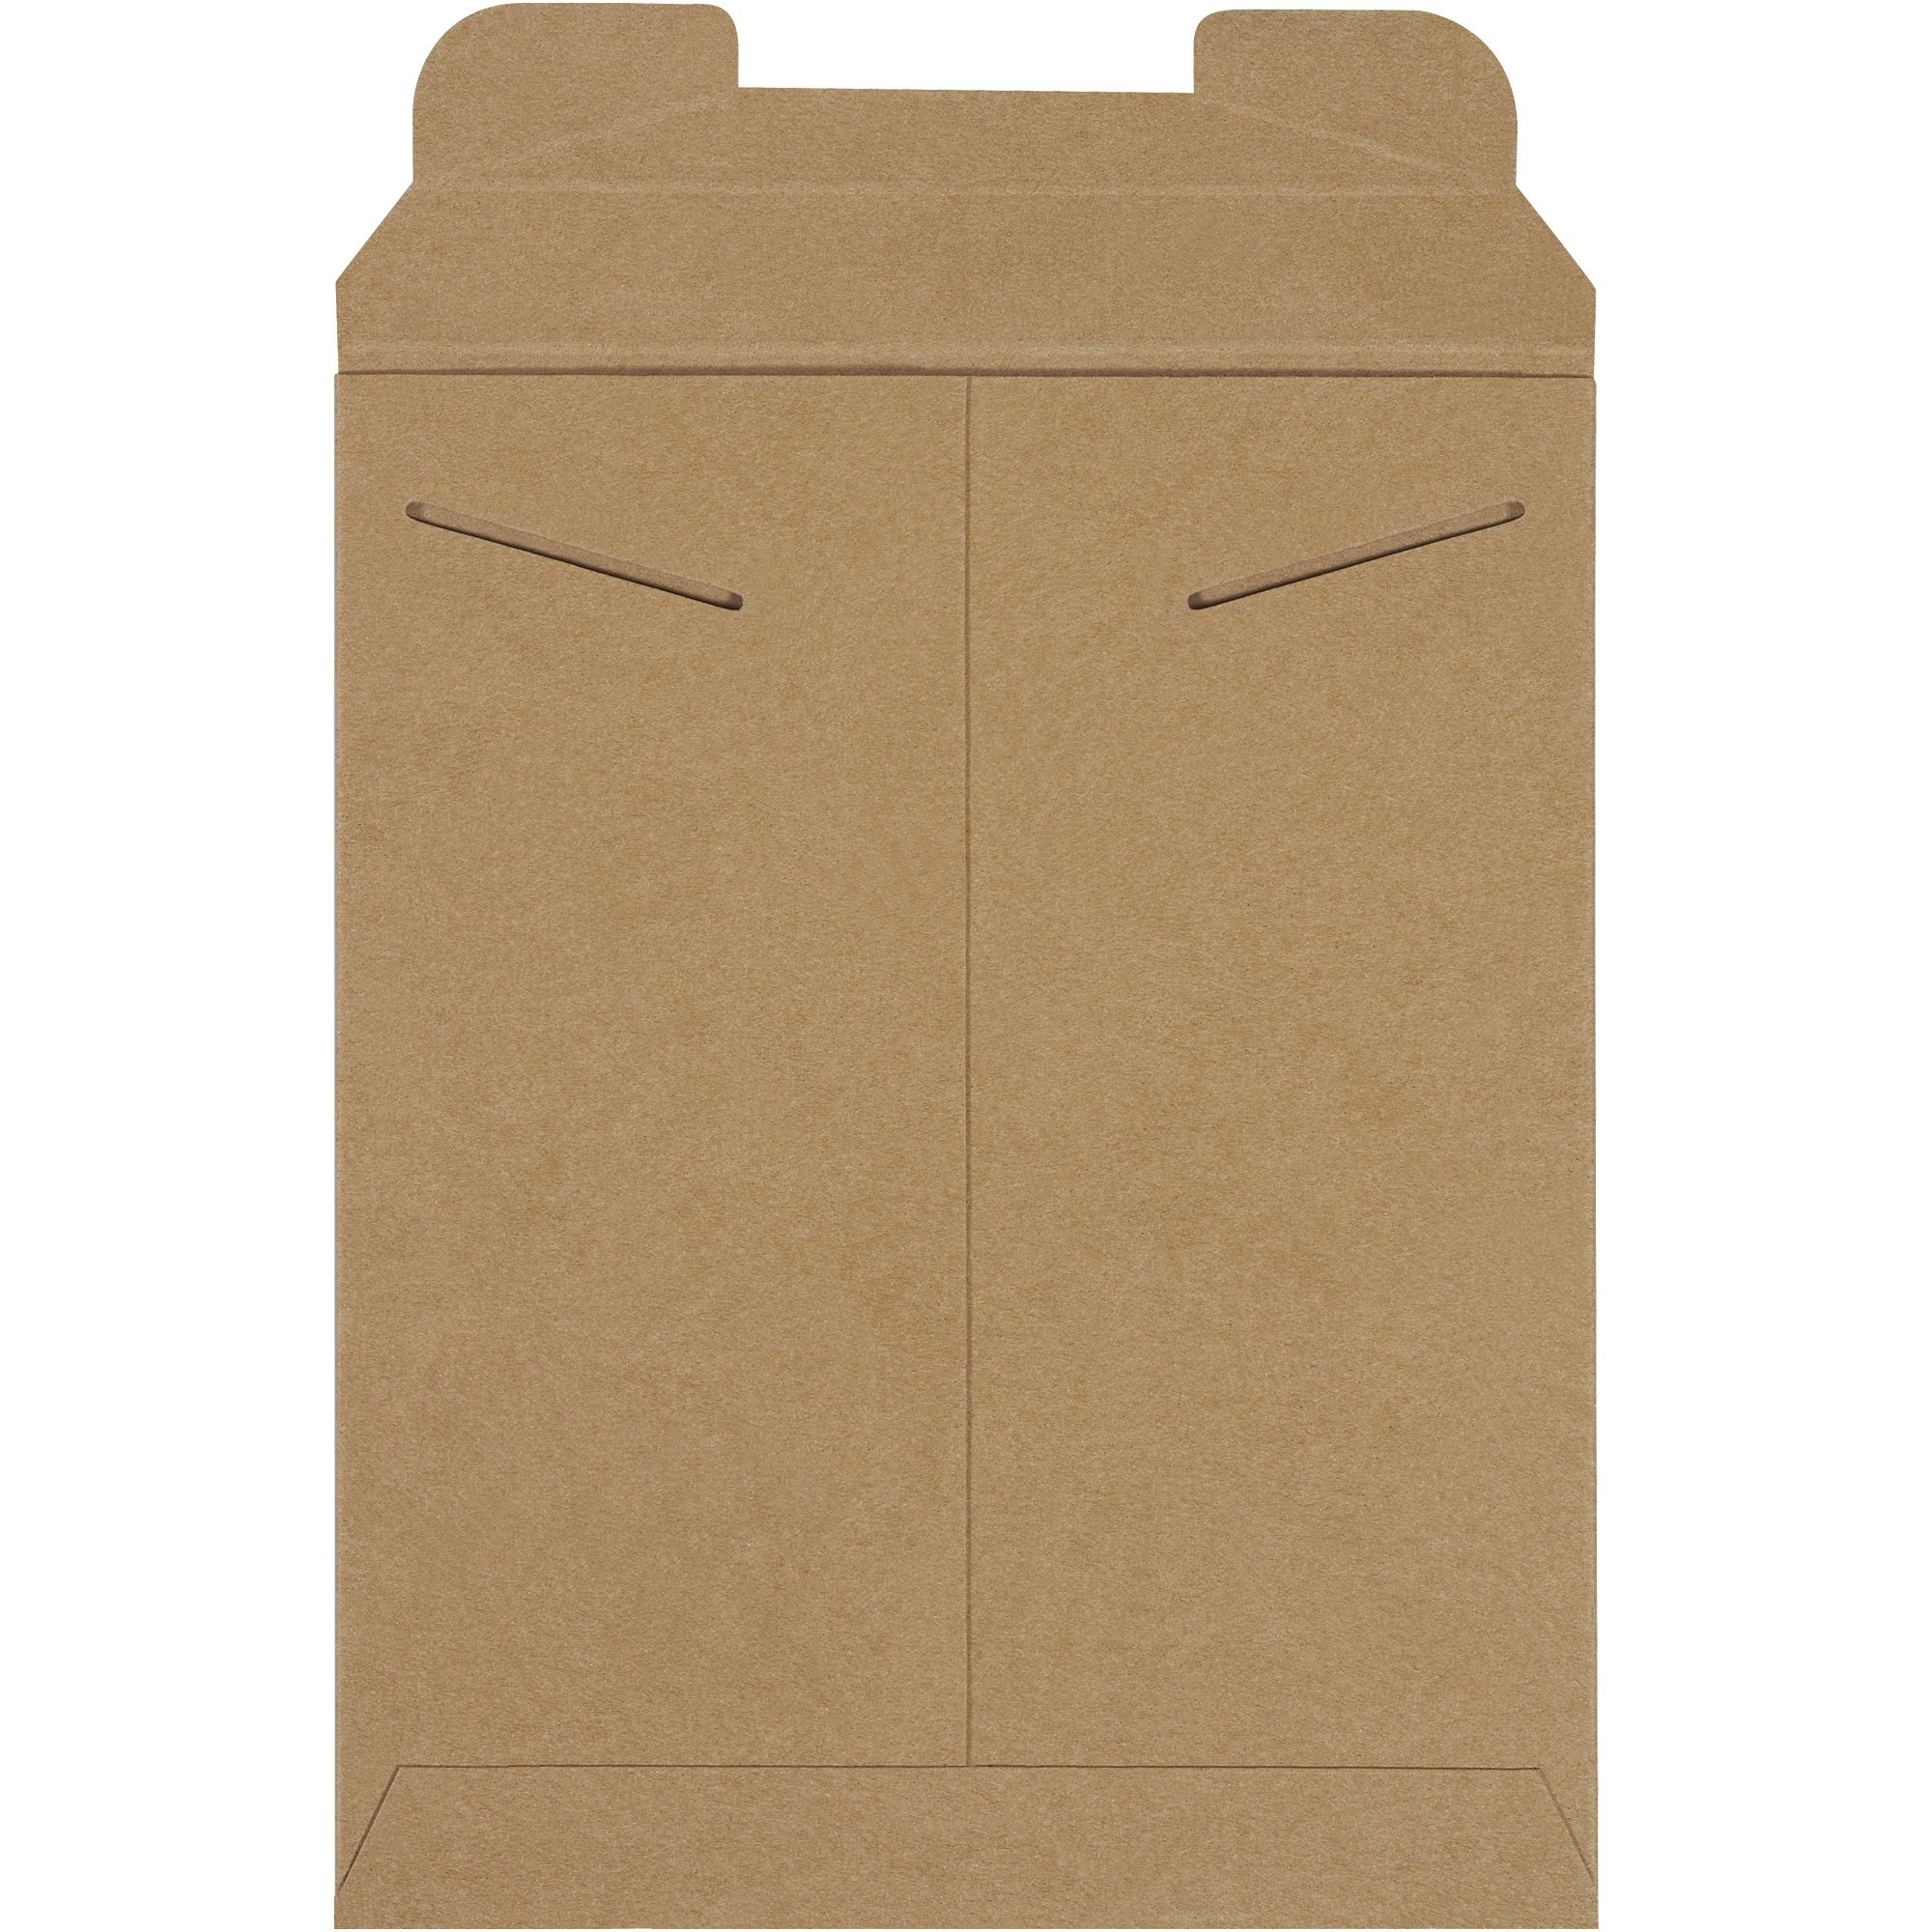 Aviditi RM5 Chipboard Flat Mailer, 12-1/4'' Length x 9-3/4'' Width, 0.038'' Thick, Kraft (Case of 100) by Aviditi (Image #2)